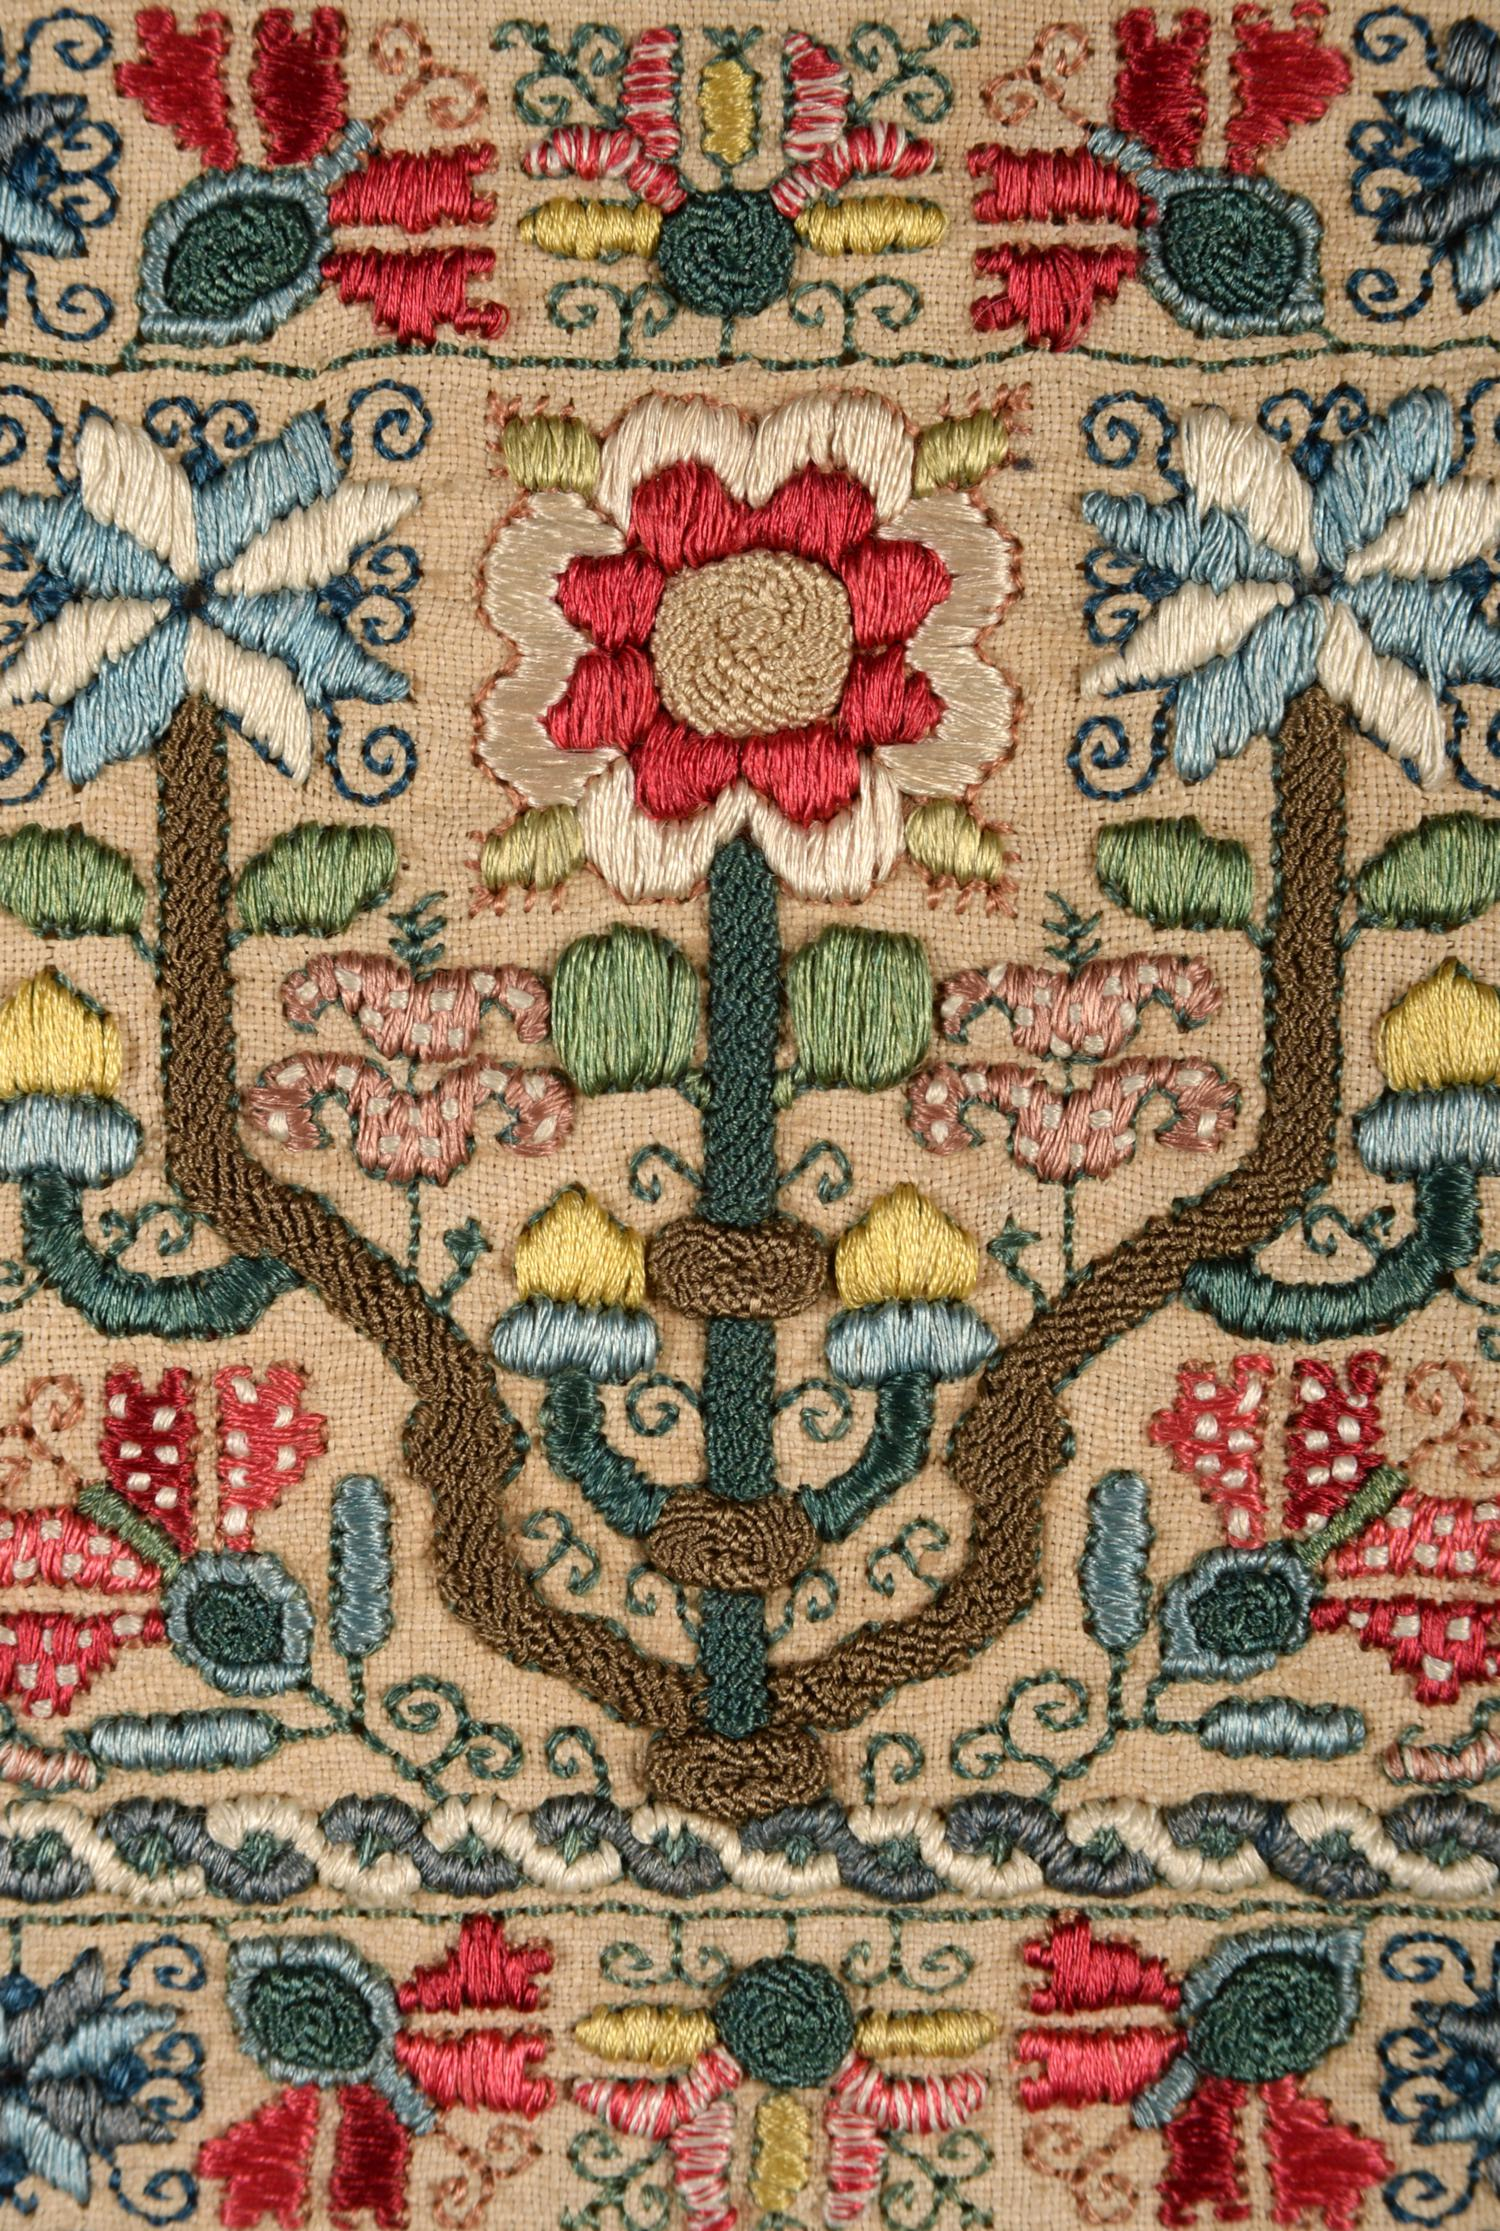 An Important Late 17th Century Quaker Band Sampler of Exceptional Quality, worked in coloured silk - Image 5 of 6